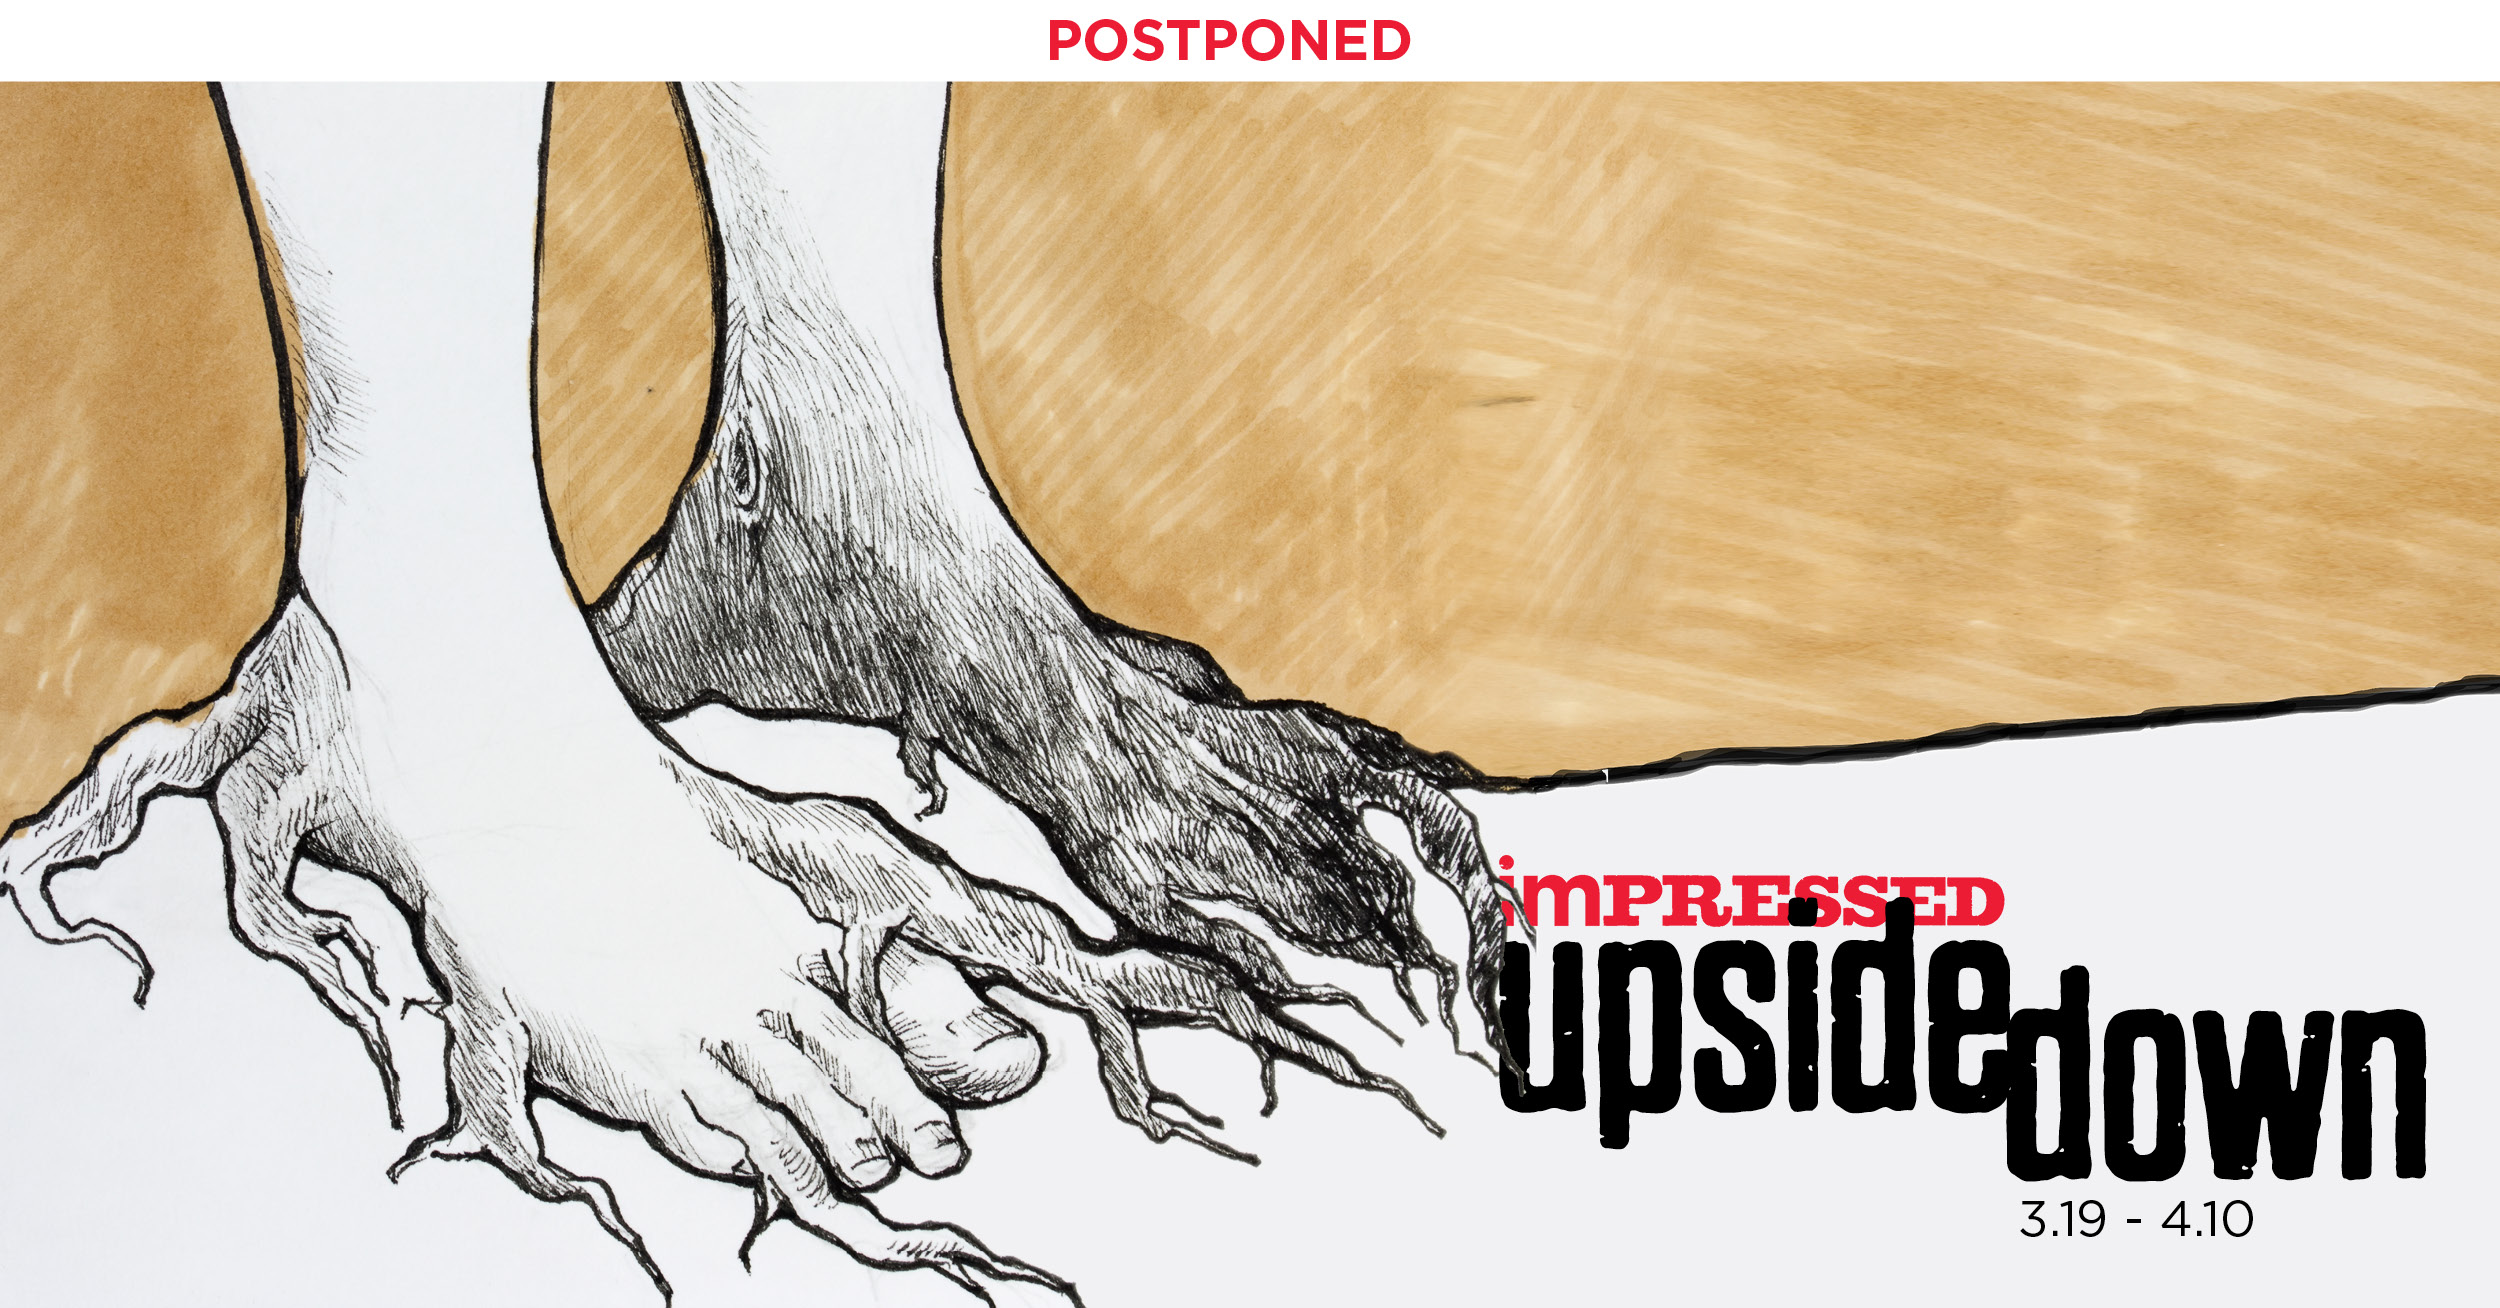 Postponed - Impressed:Upside Down